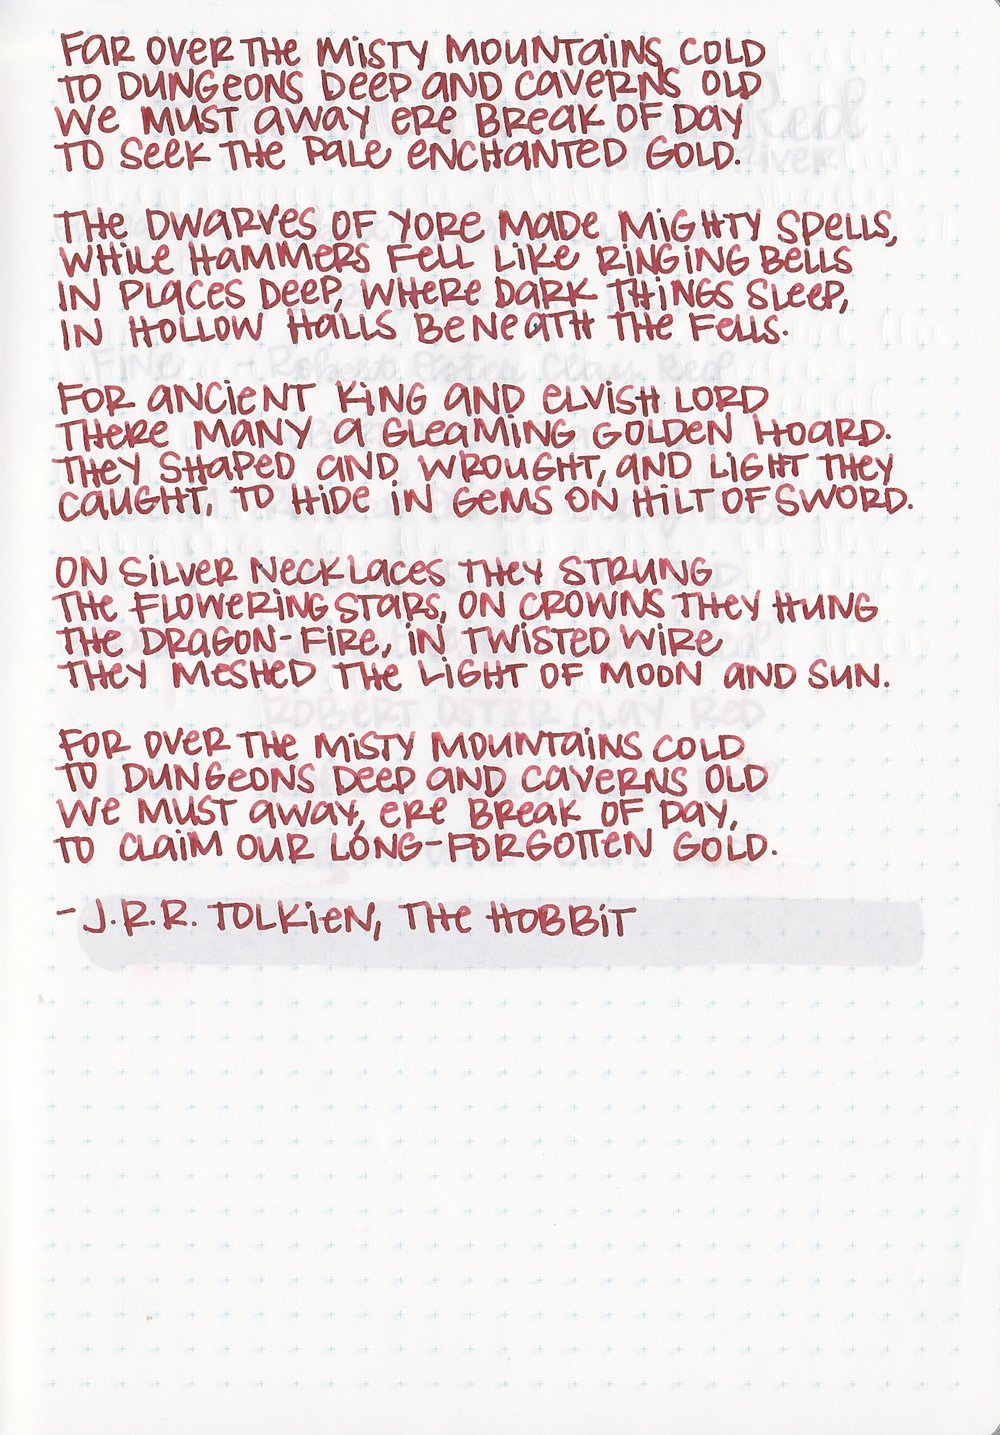 Longer writing: - Clay Red has a medium flow and dry time. The ink showed medium shading and no sheen on this page.